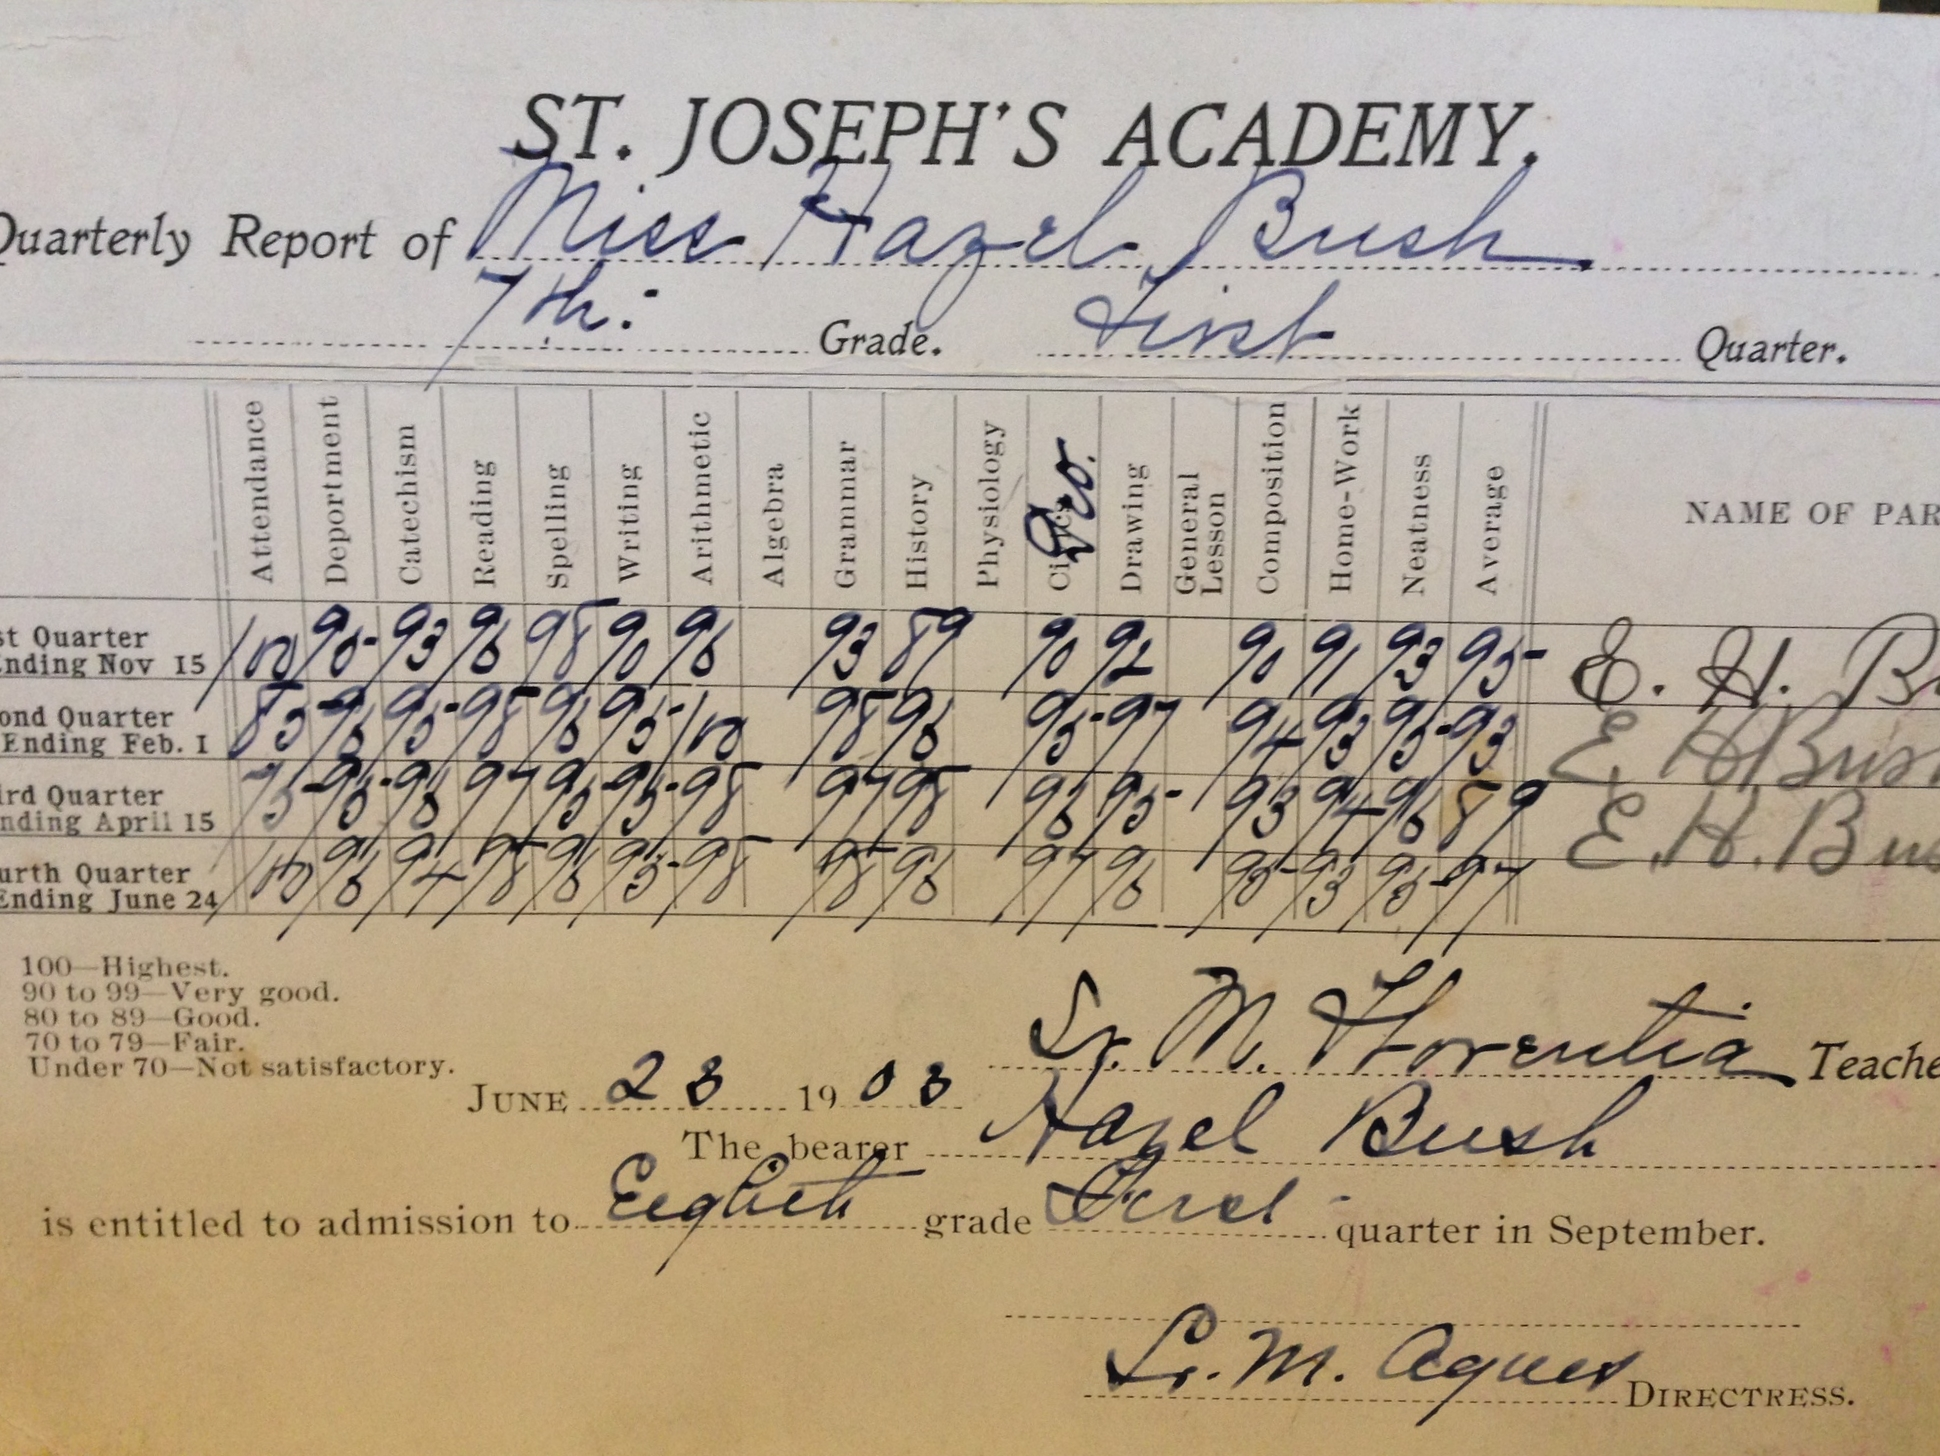 Hazel Bush's 7th grade report card from 1908